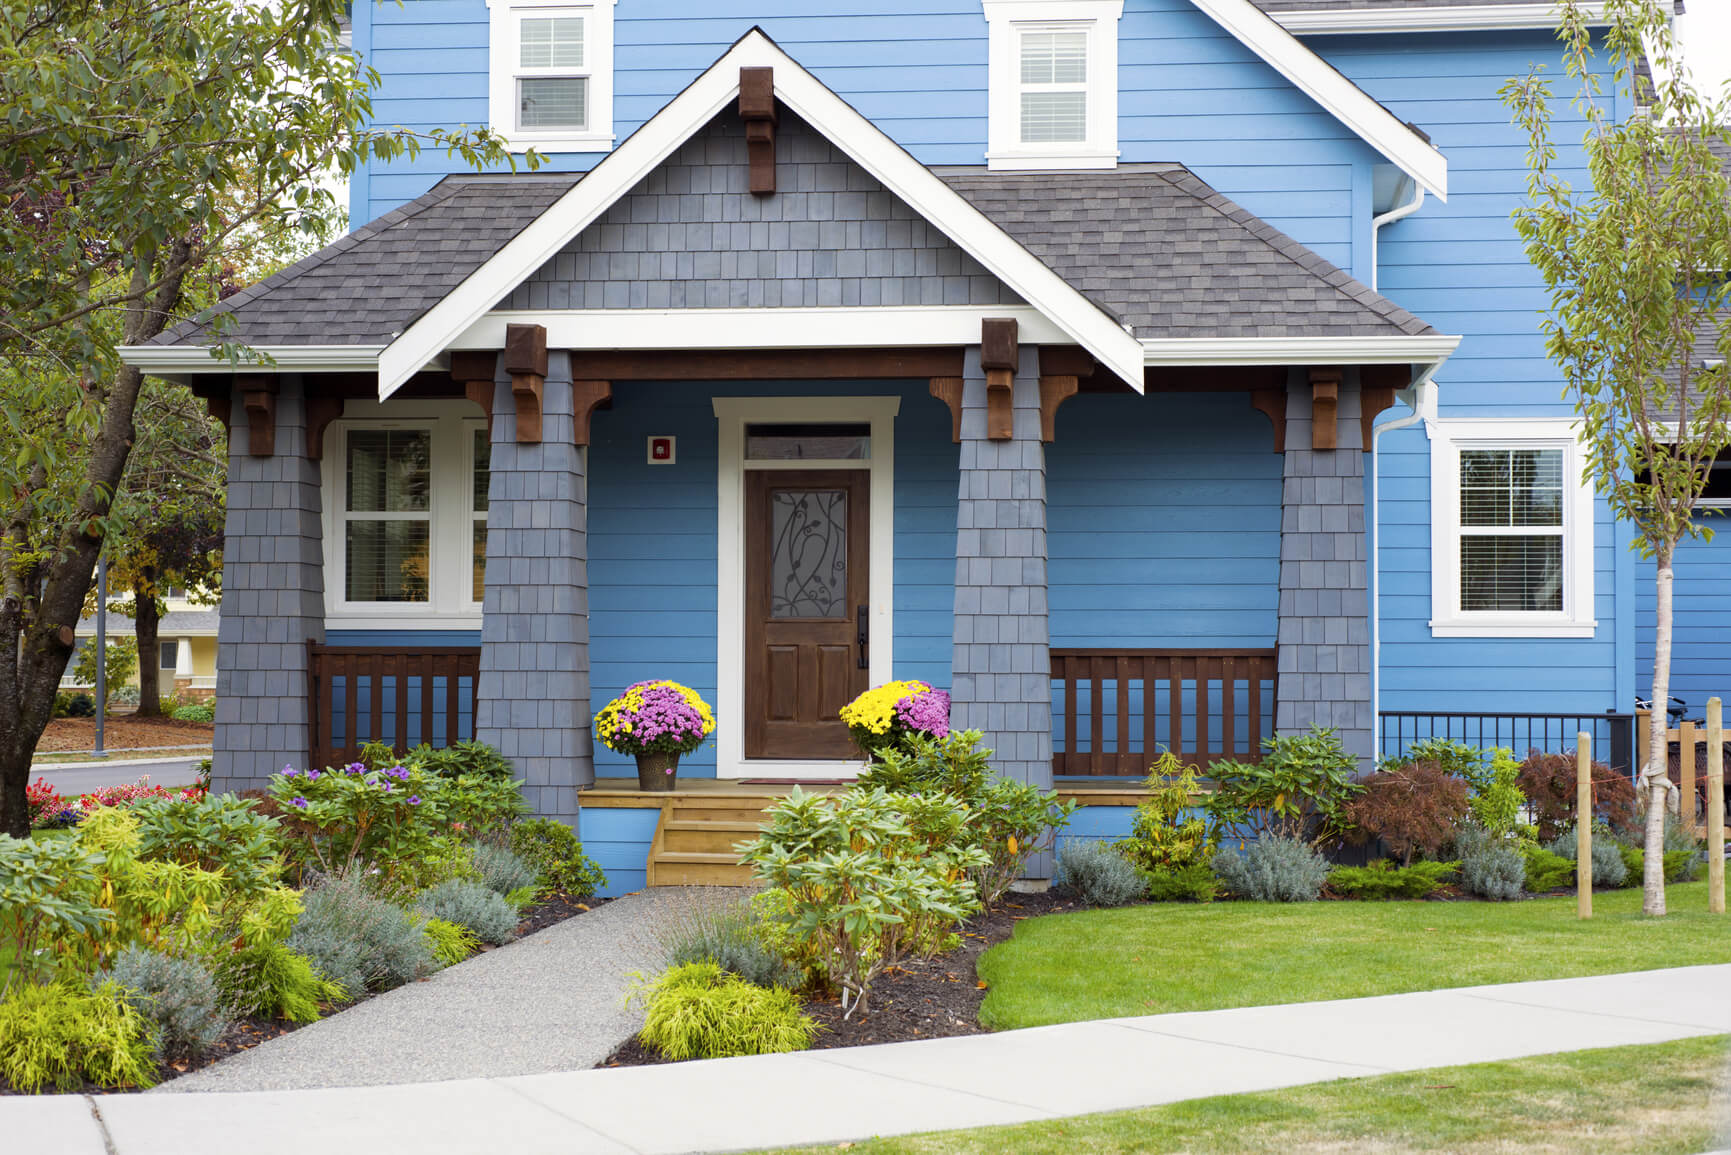 Budget friendly curb appeal ideas for Homes on budget com